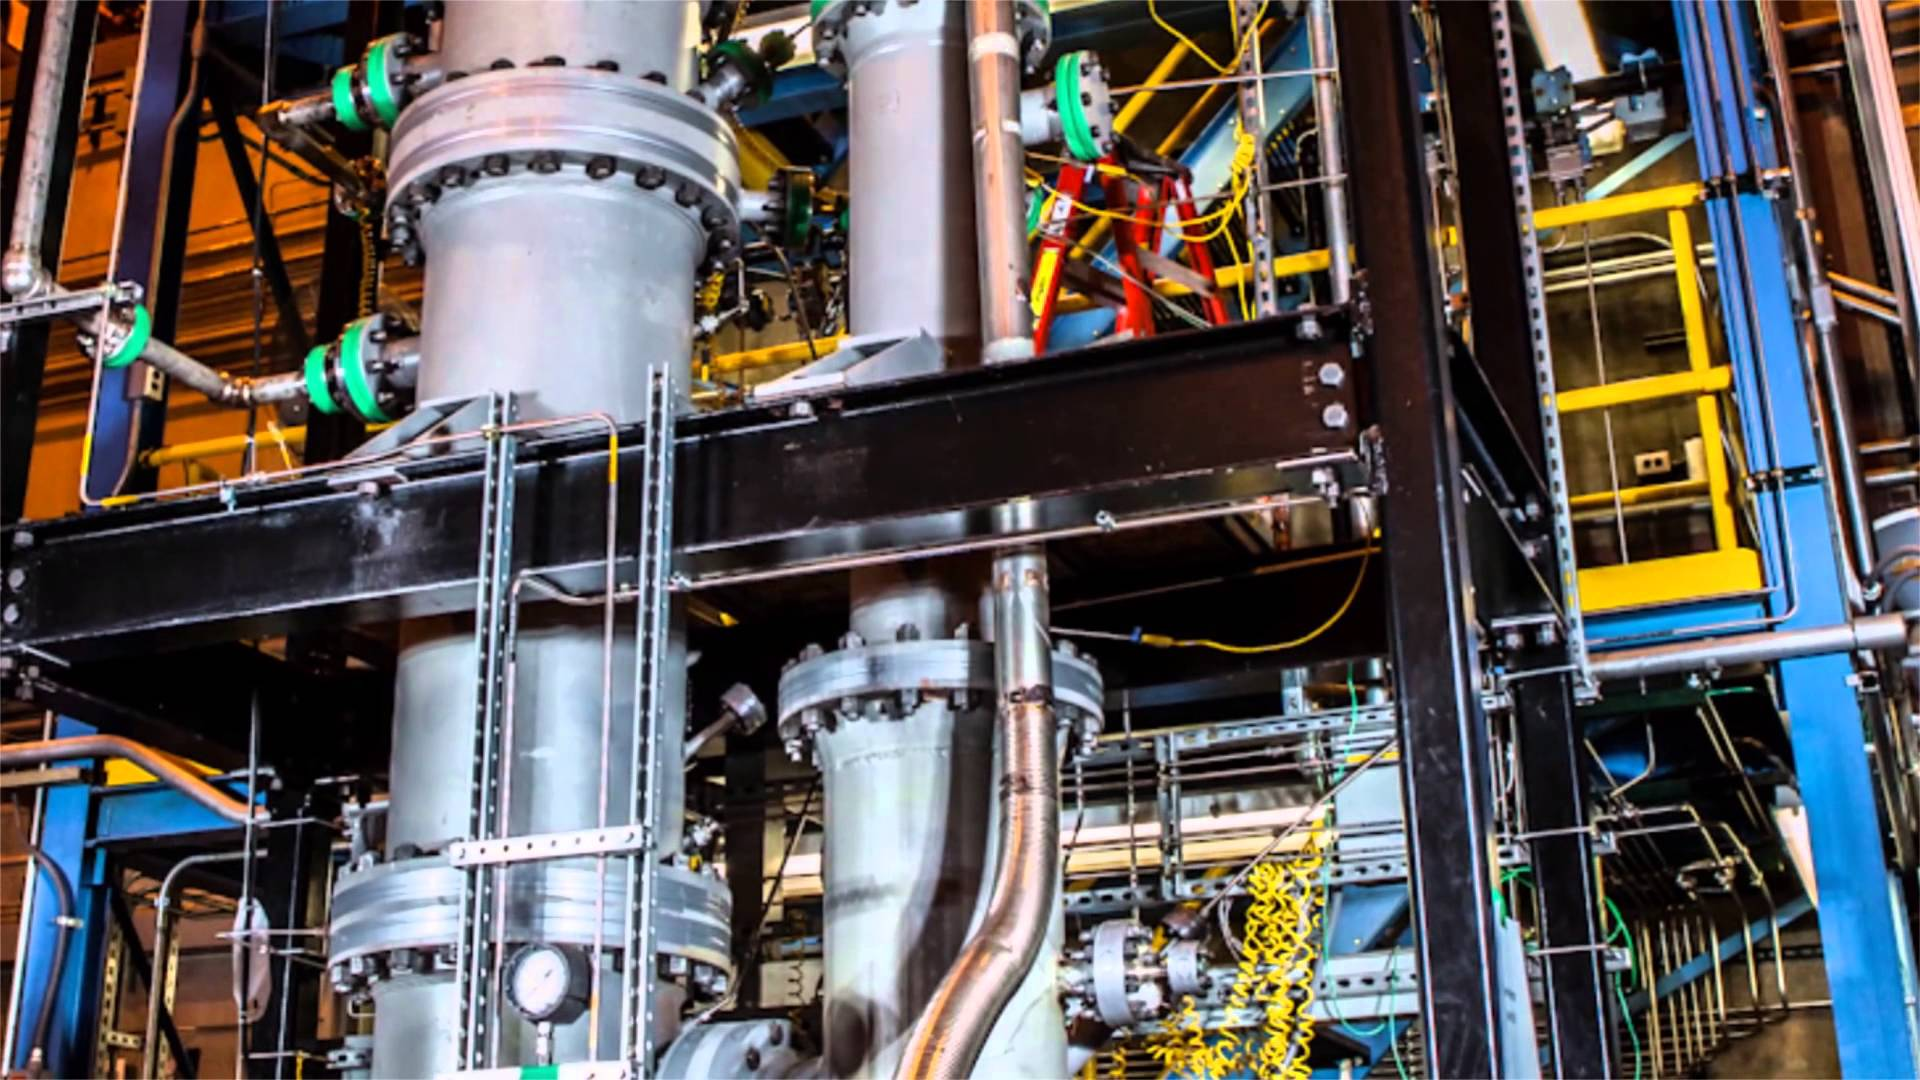 Chemically clean glawss lined reactor vessels | Hydrosol Systems